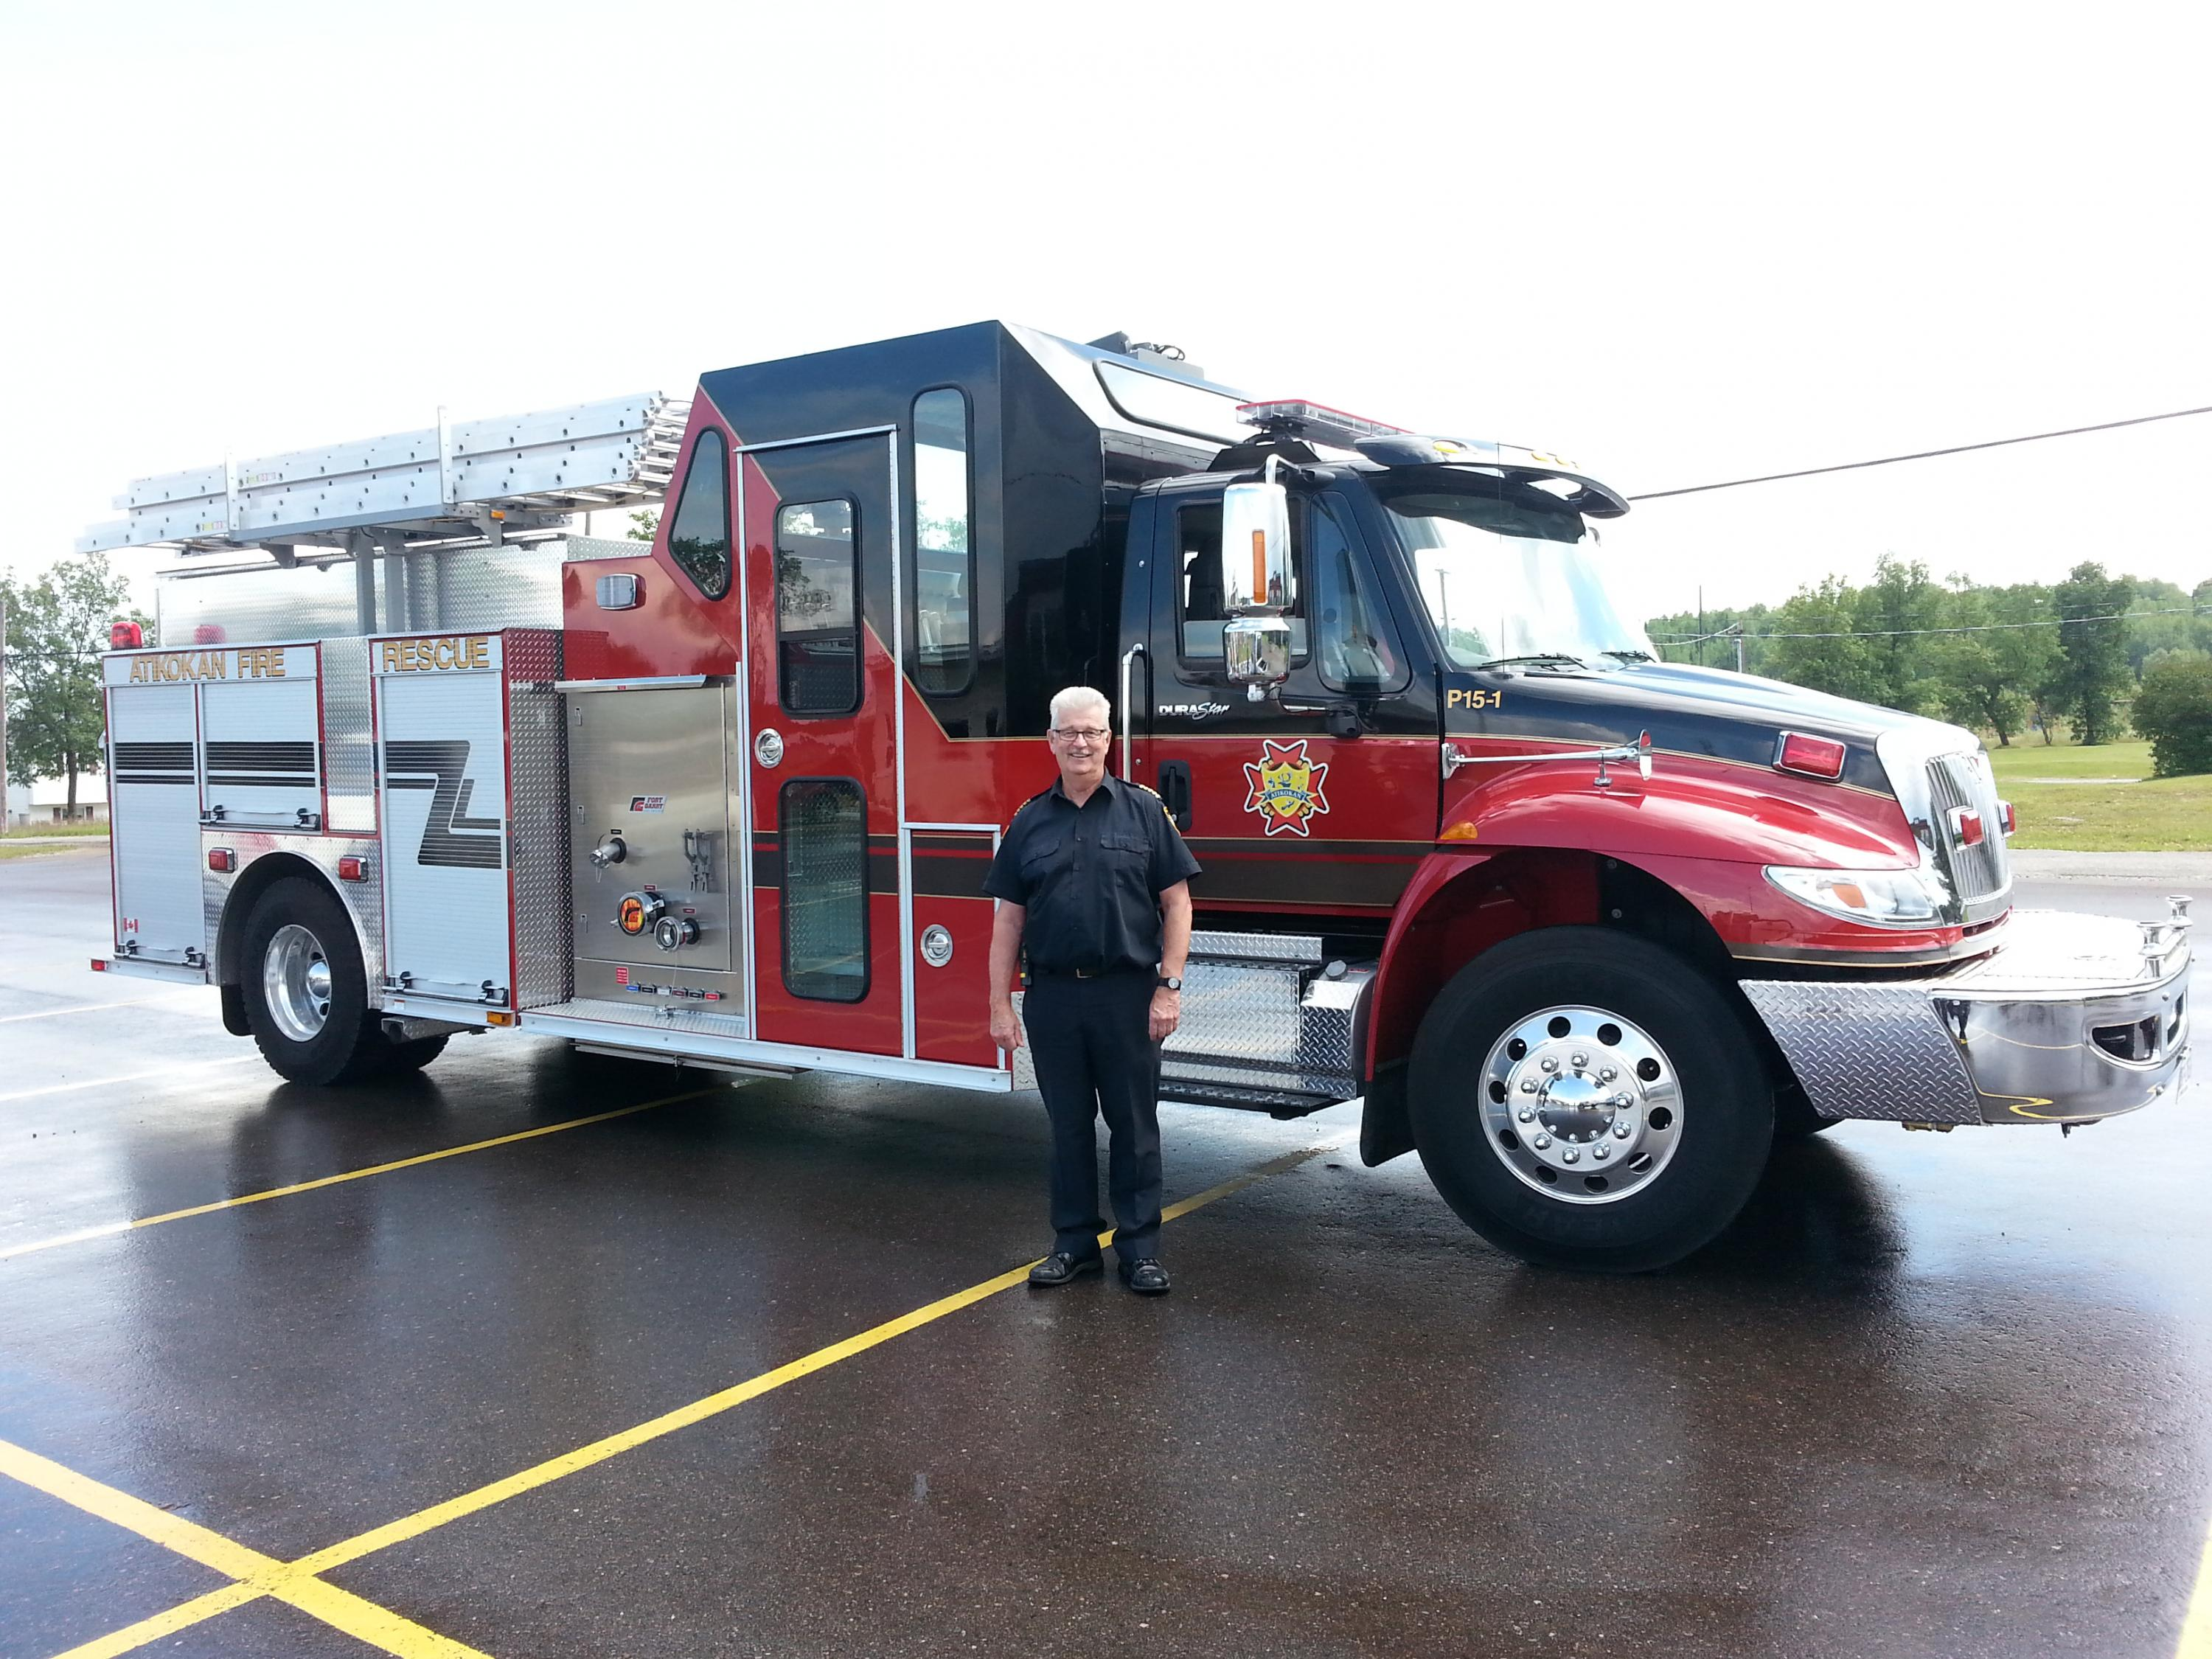 fire truck with man for size comparison